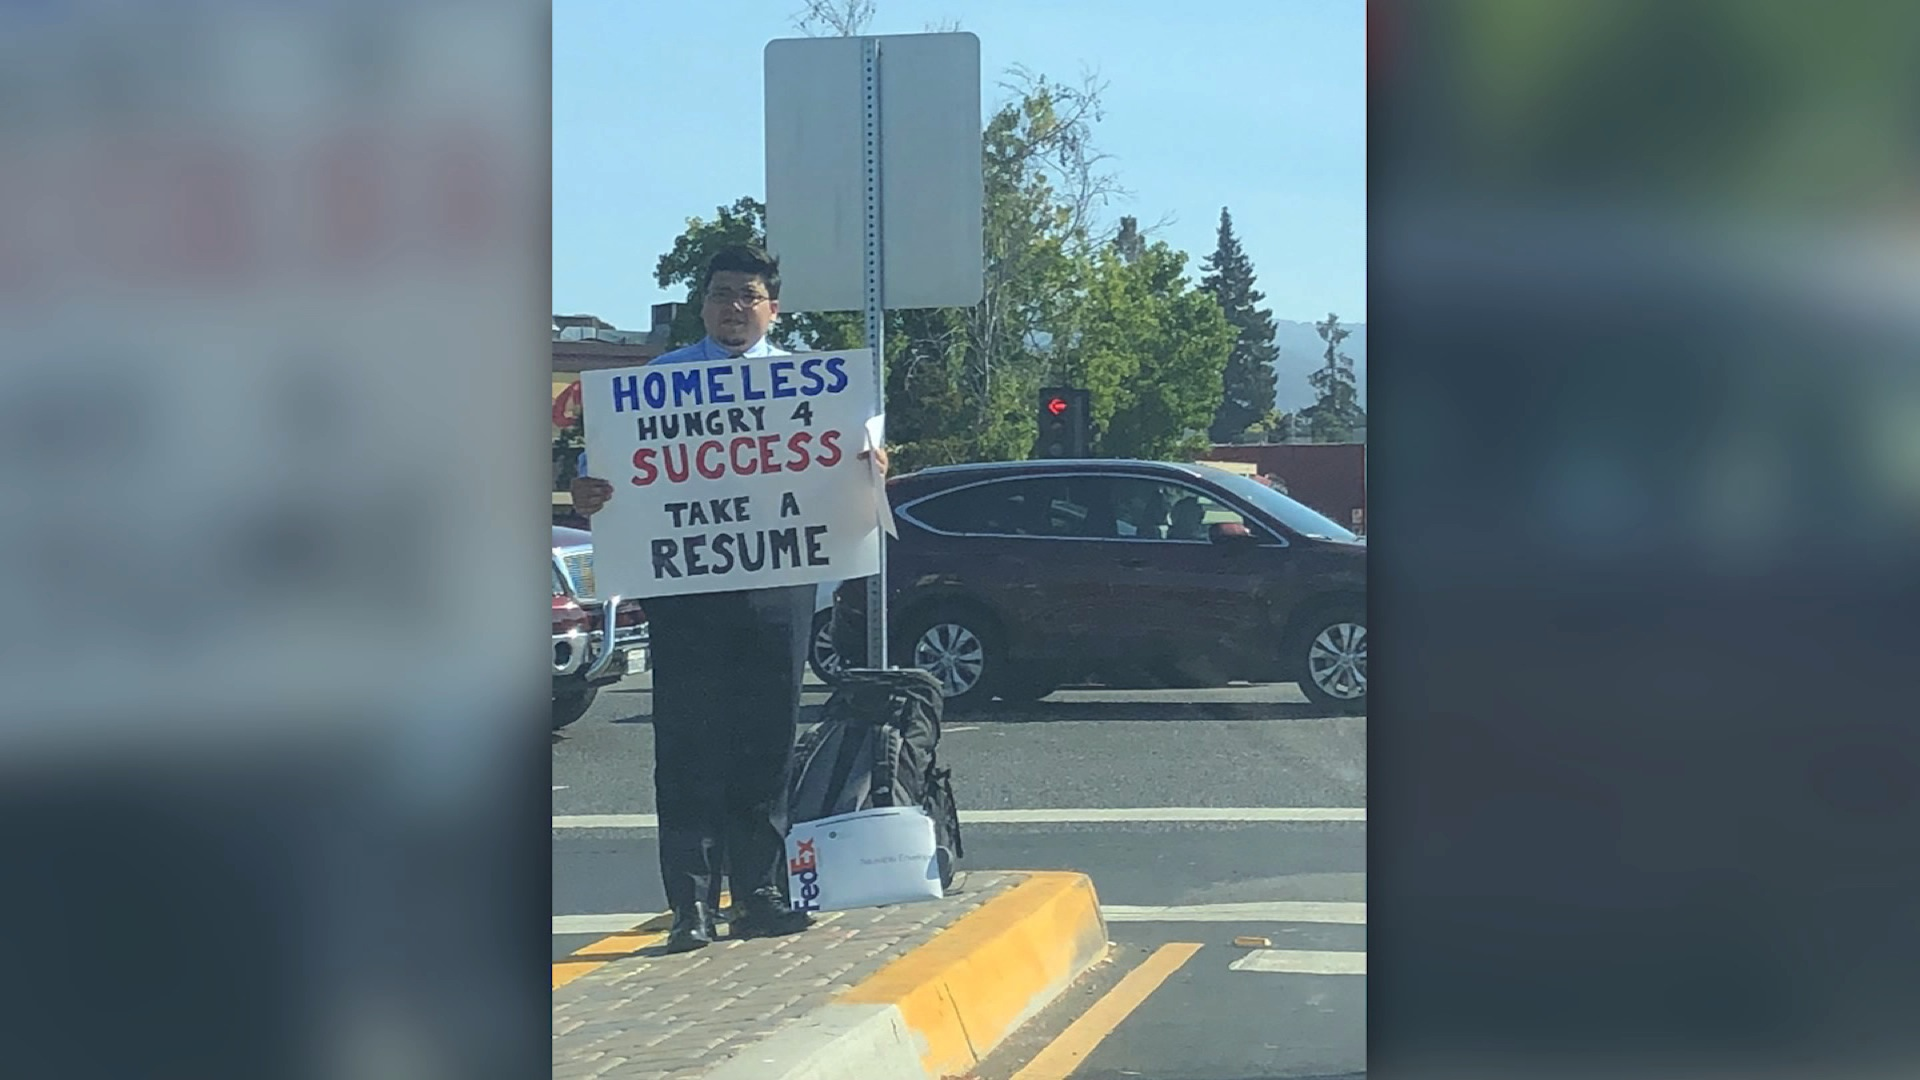 Homeless man hands out resumes, goes viral - CNN Video